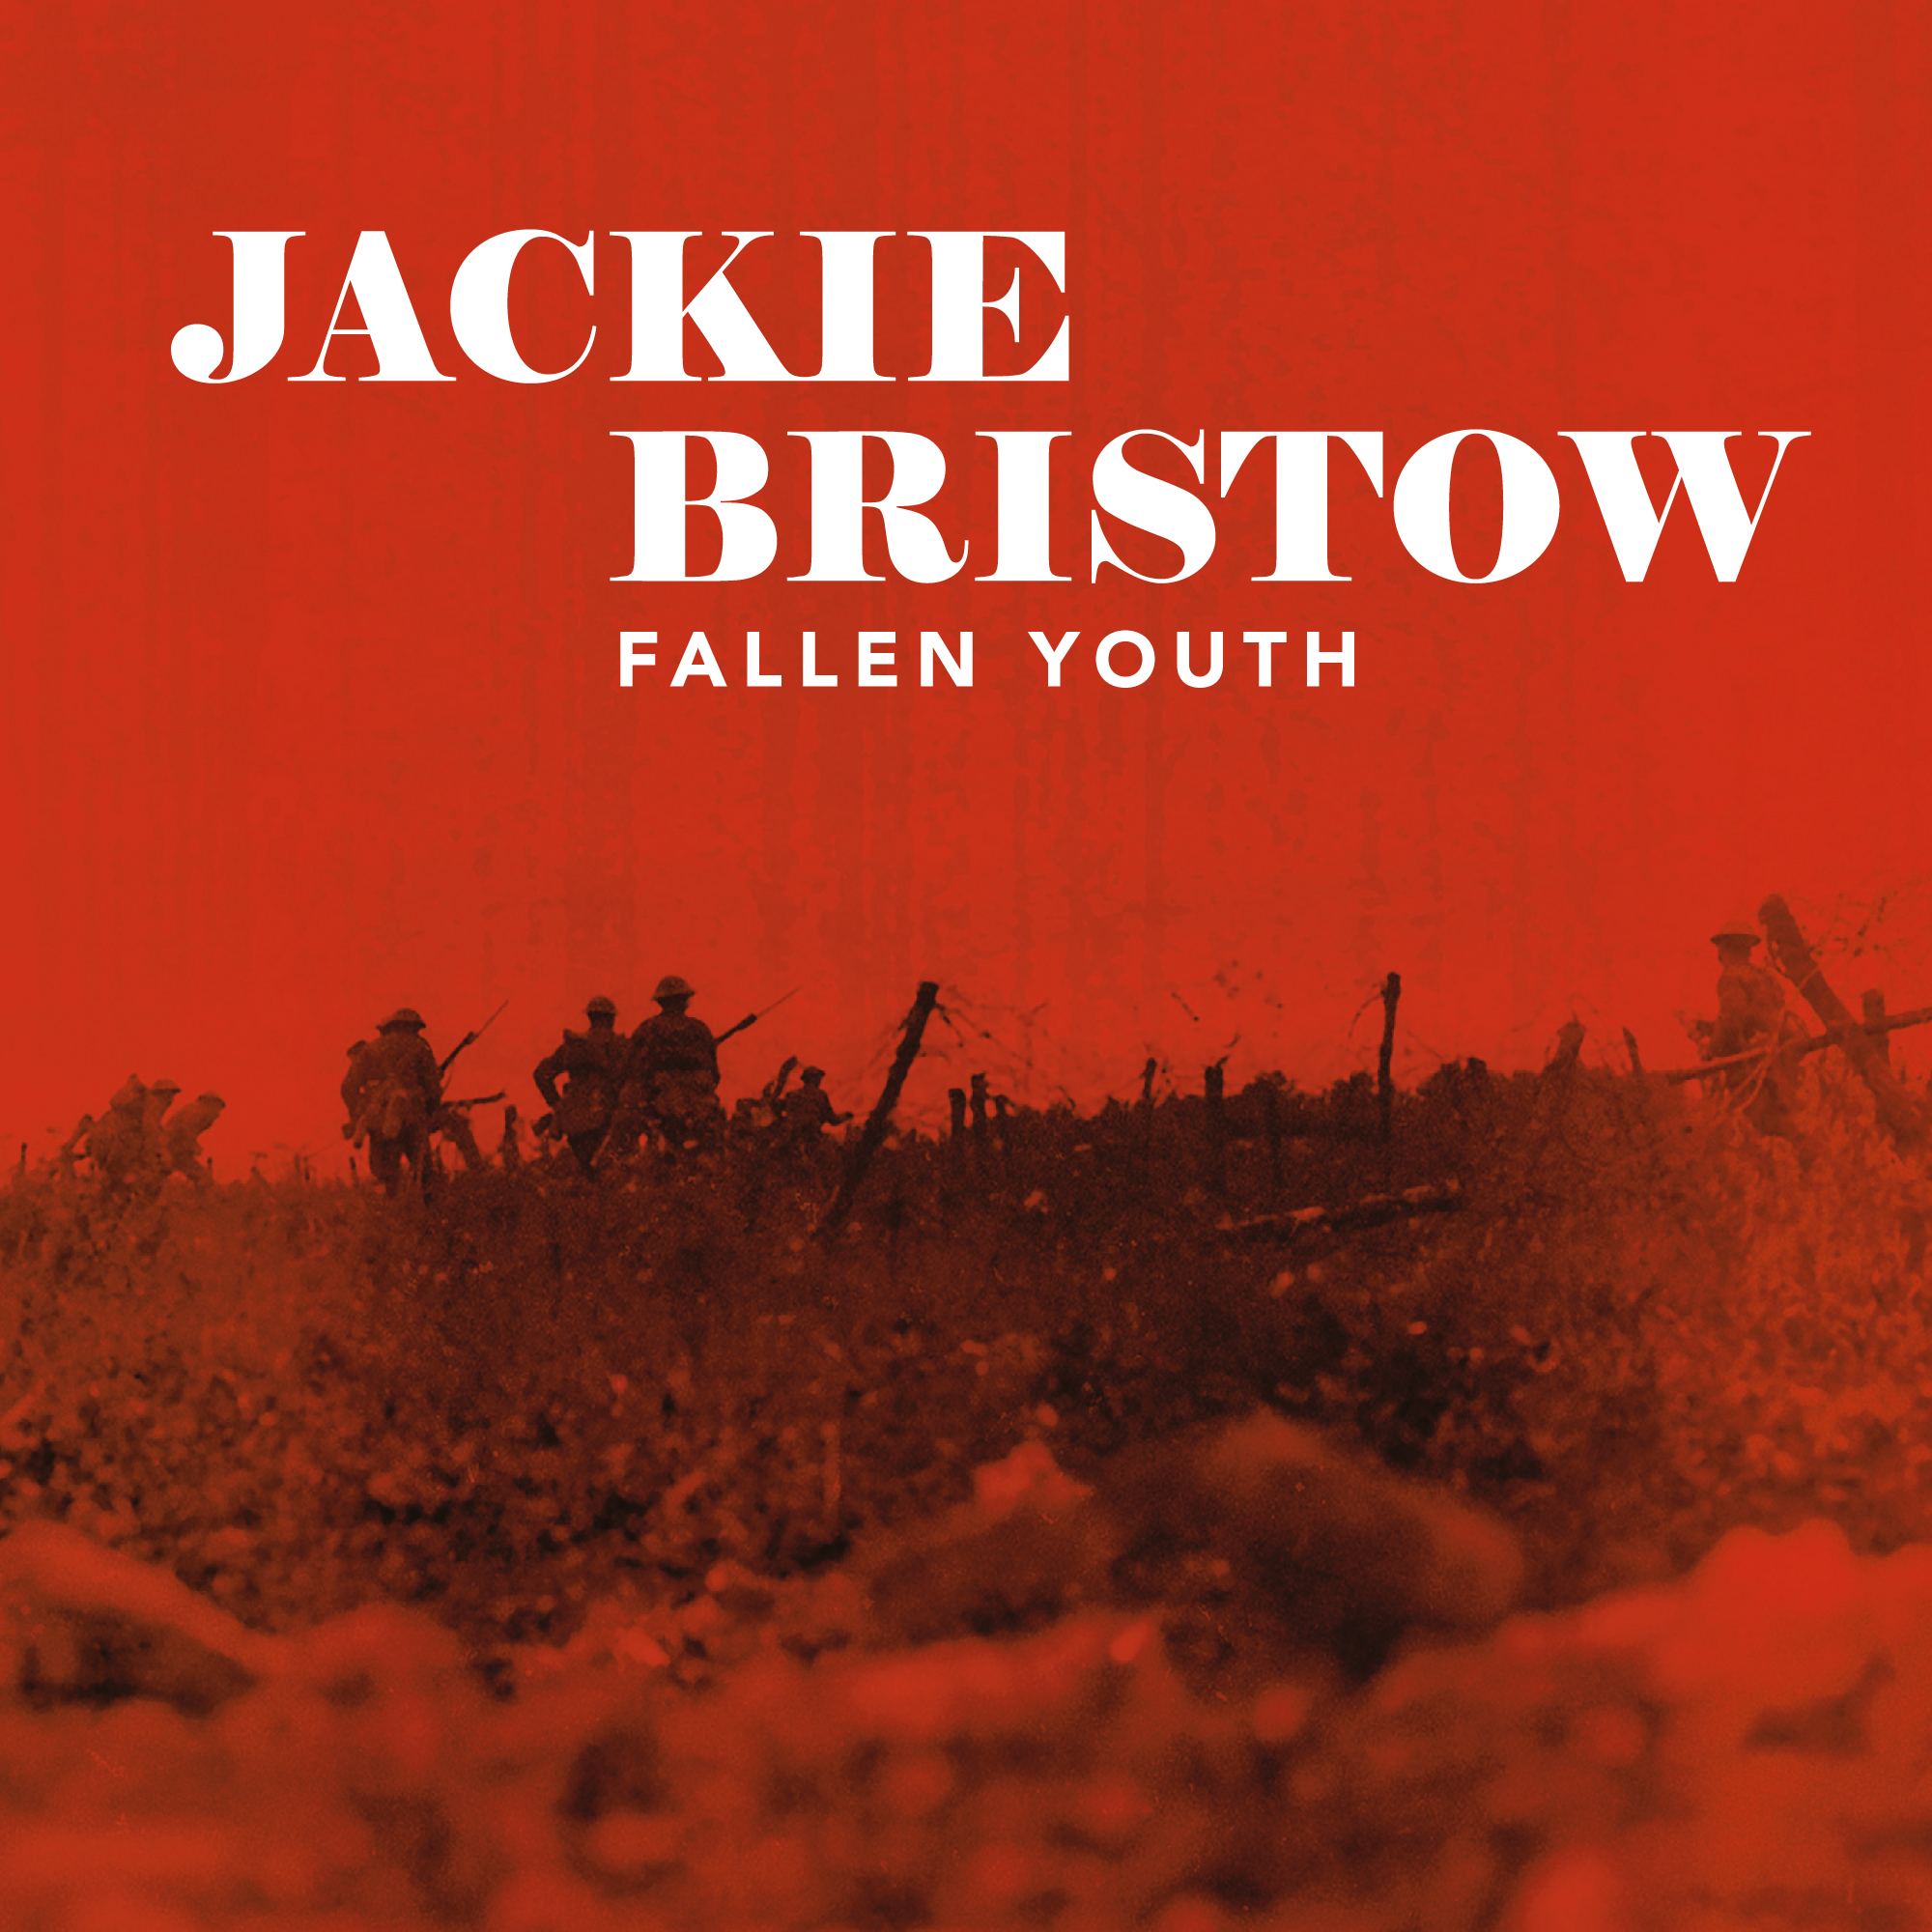 JACKIE BRISTOW 'Fallen Youth'